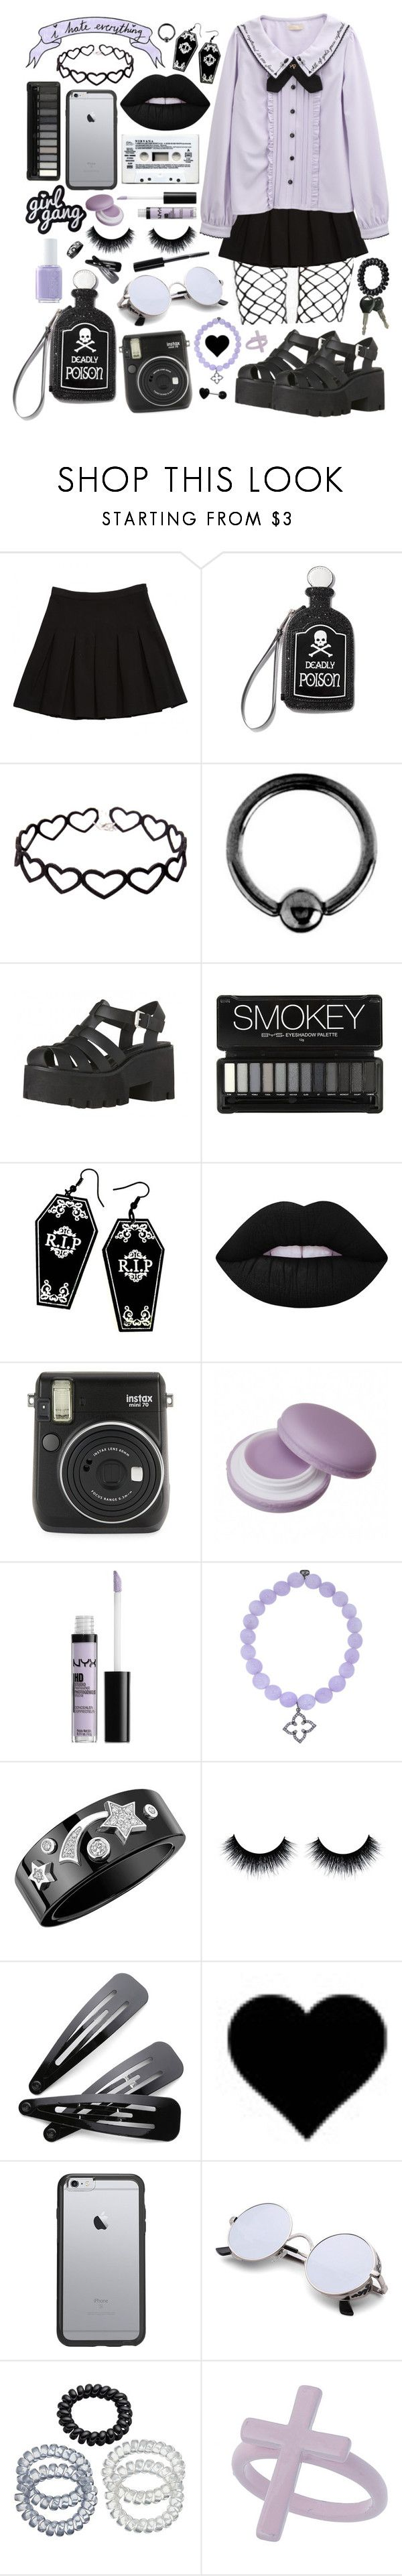 """""""Purple pastel goth"""" by pastelprincess152 ❤ liked on Polyvore featuring Diane Von Furstenberg, Current Mood, Urbiana, Curiology, Lime Crime, Fuji, Essie, NYX, Sydney Evan and Chanel"""